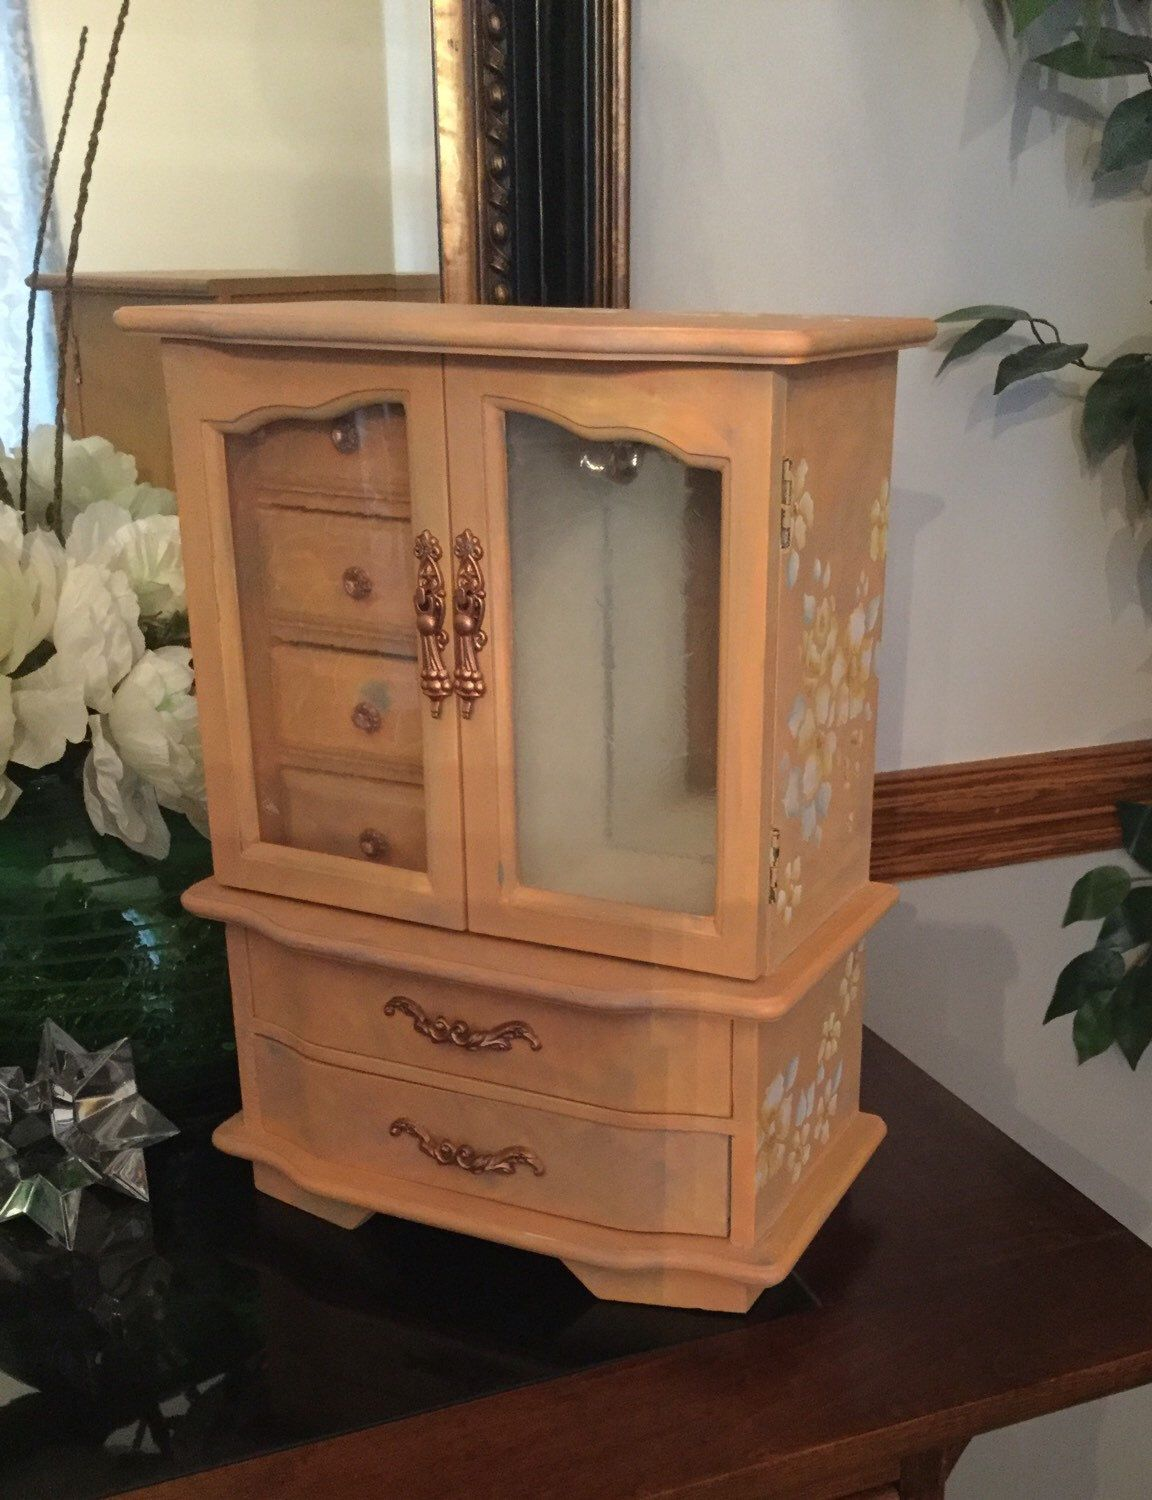 Upcycled Jewelry Armoire Upcycled Shabby Chic Jewelry Box with